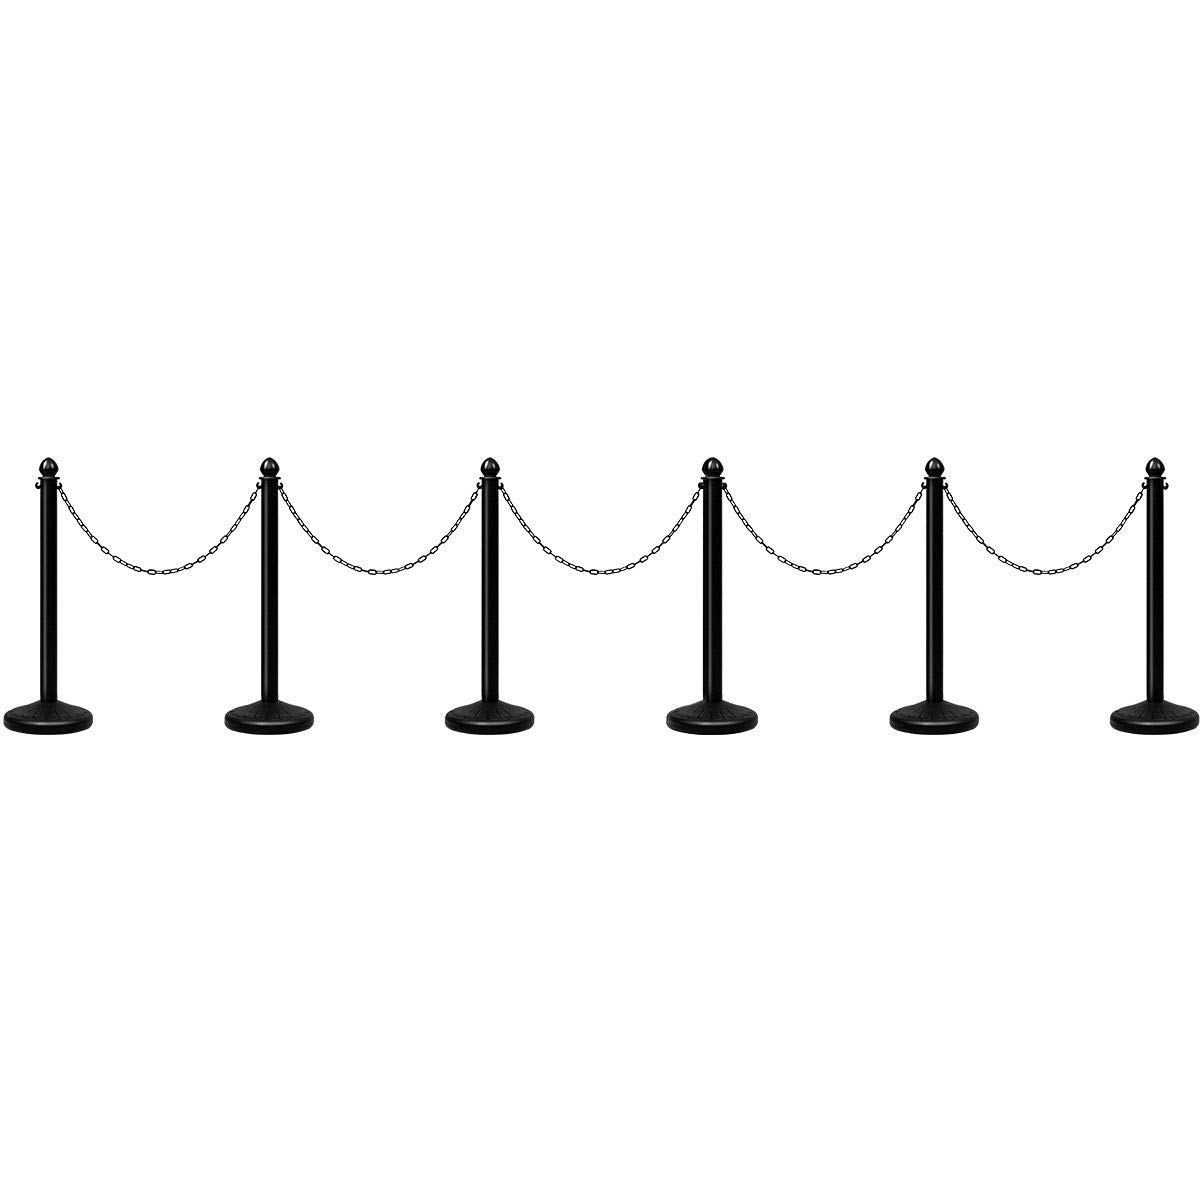 Goplus 6pcs Plastic Stanchion Set Crowd Control Stanchions Barriers Outdoor and Indoor Stanchions with 39.5'' Connect Chain, C-Hooks by Goplus